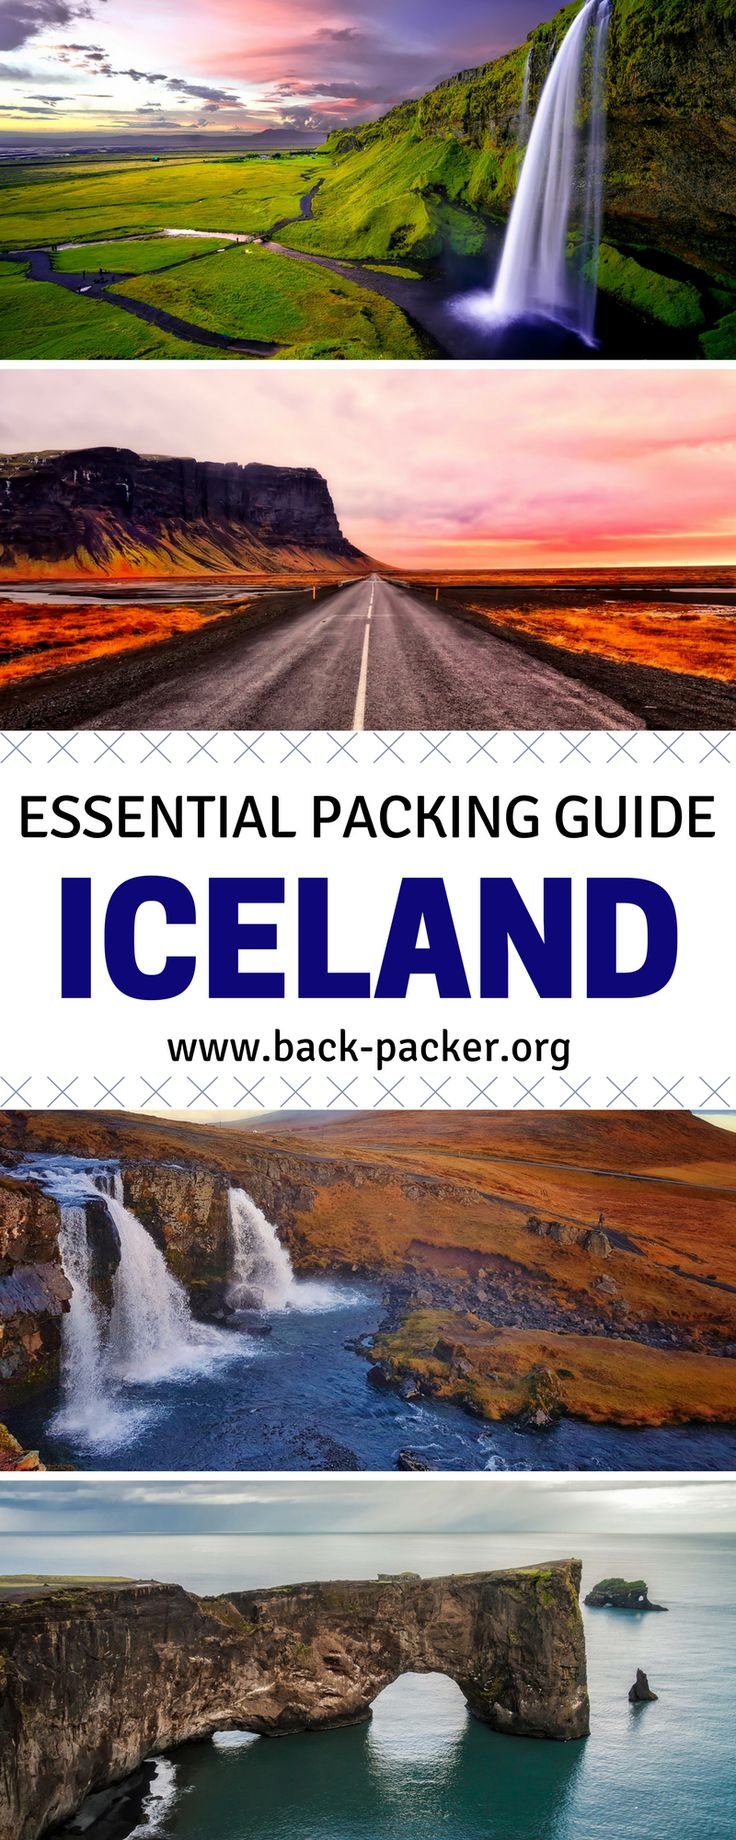 The ultimate packing list for an adventure in Iceland. Get out of Reykjavik and explore the country with the right kind of gear. Packing for summer or winter trips? Utilize these tips for surviving the both the warm and cold weather. Find the perfect backpack among the many options of bags and pack the right amount of layers to see the sights such as the Northern Lights or roaring waterfalls. | Back-packer.org #Iceland